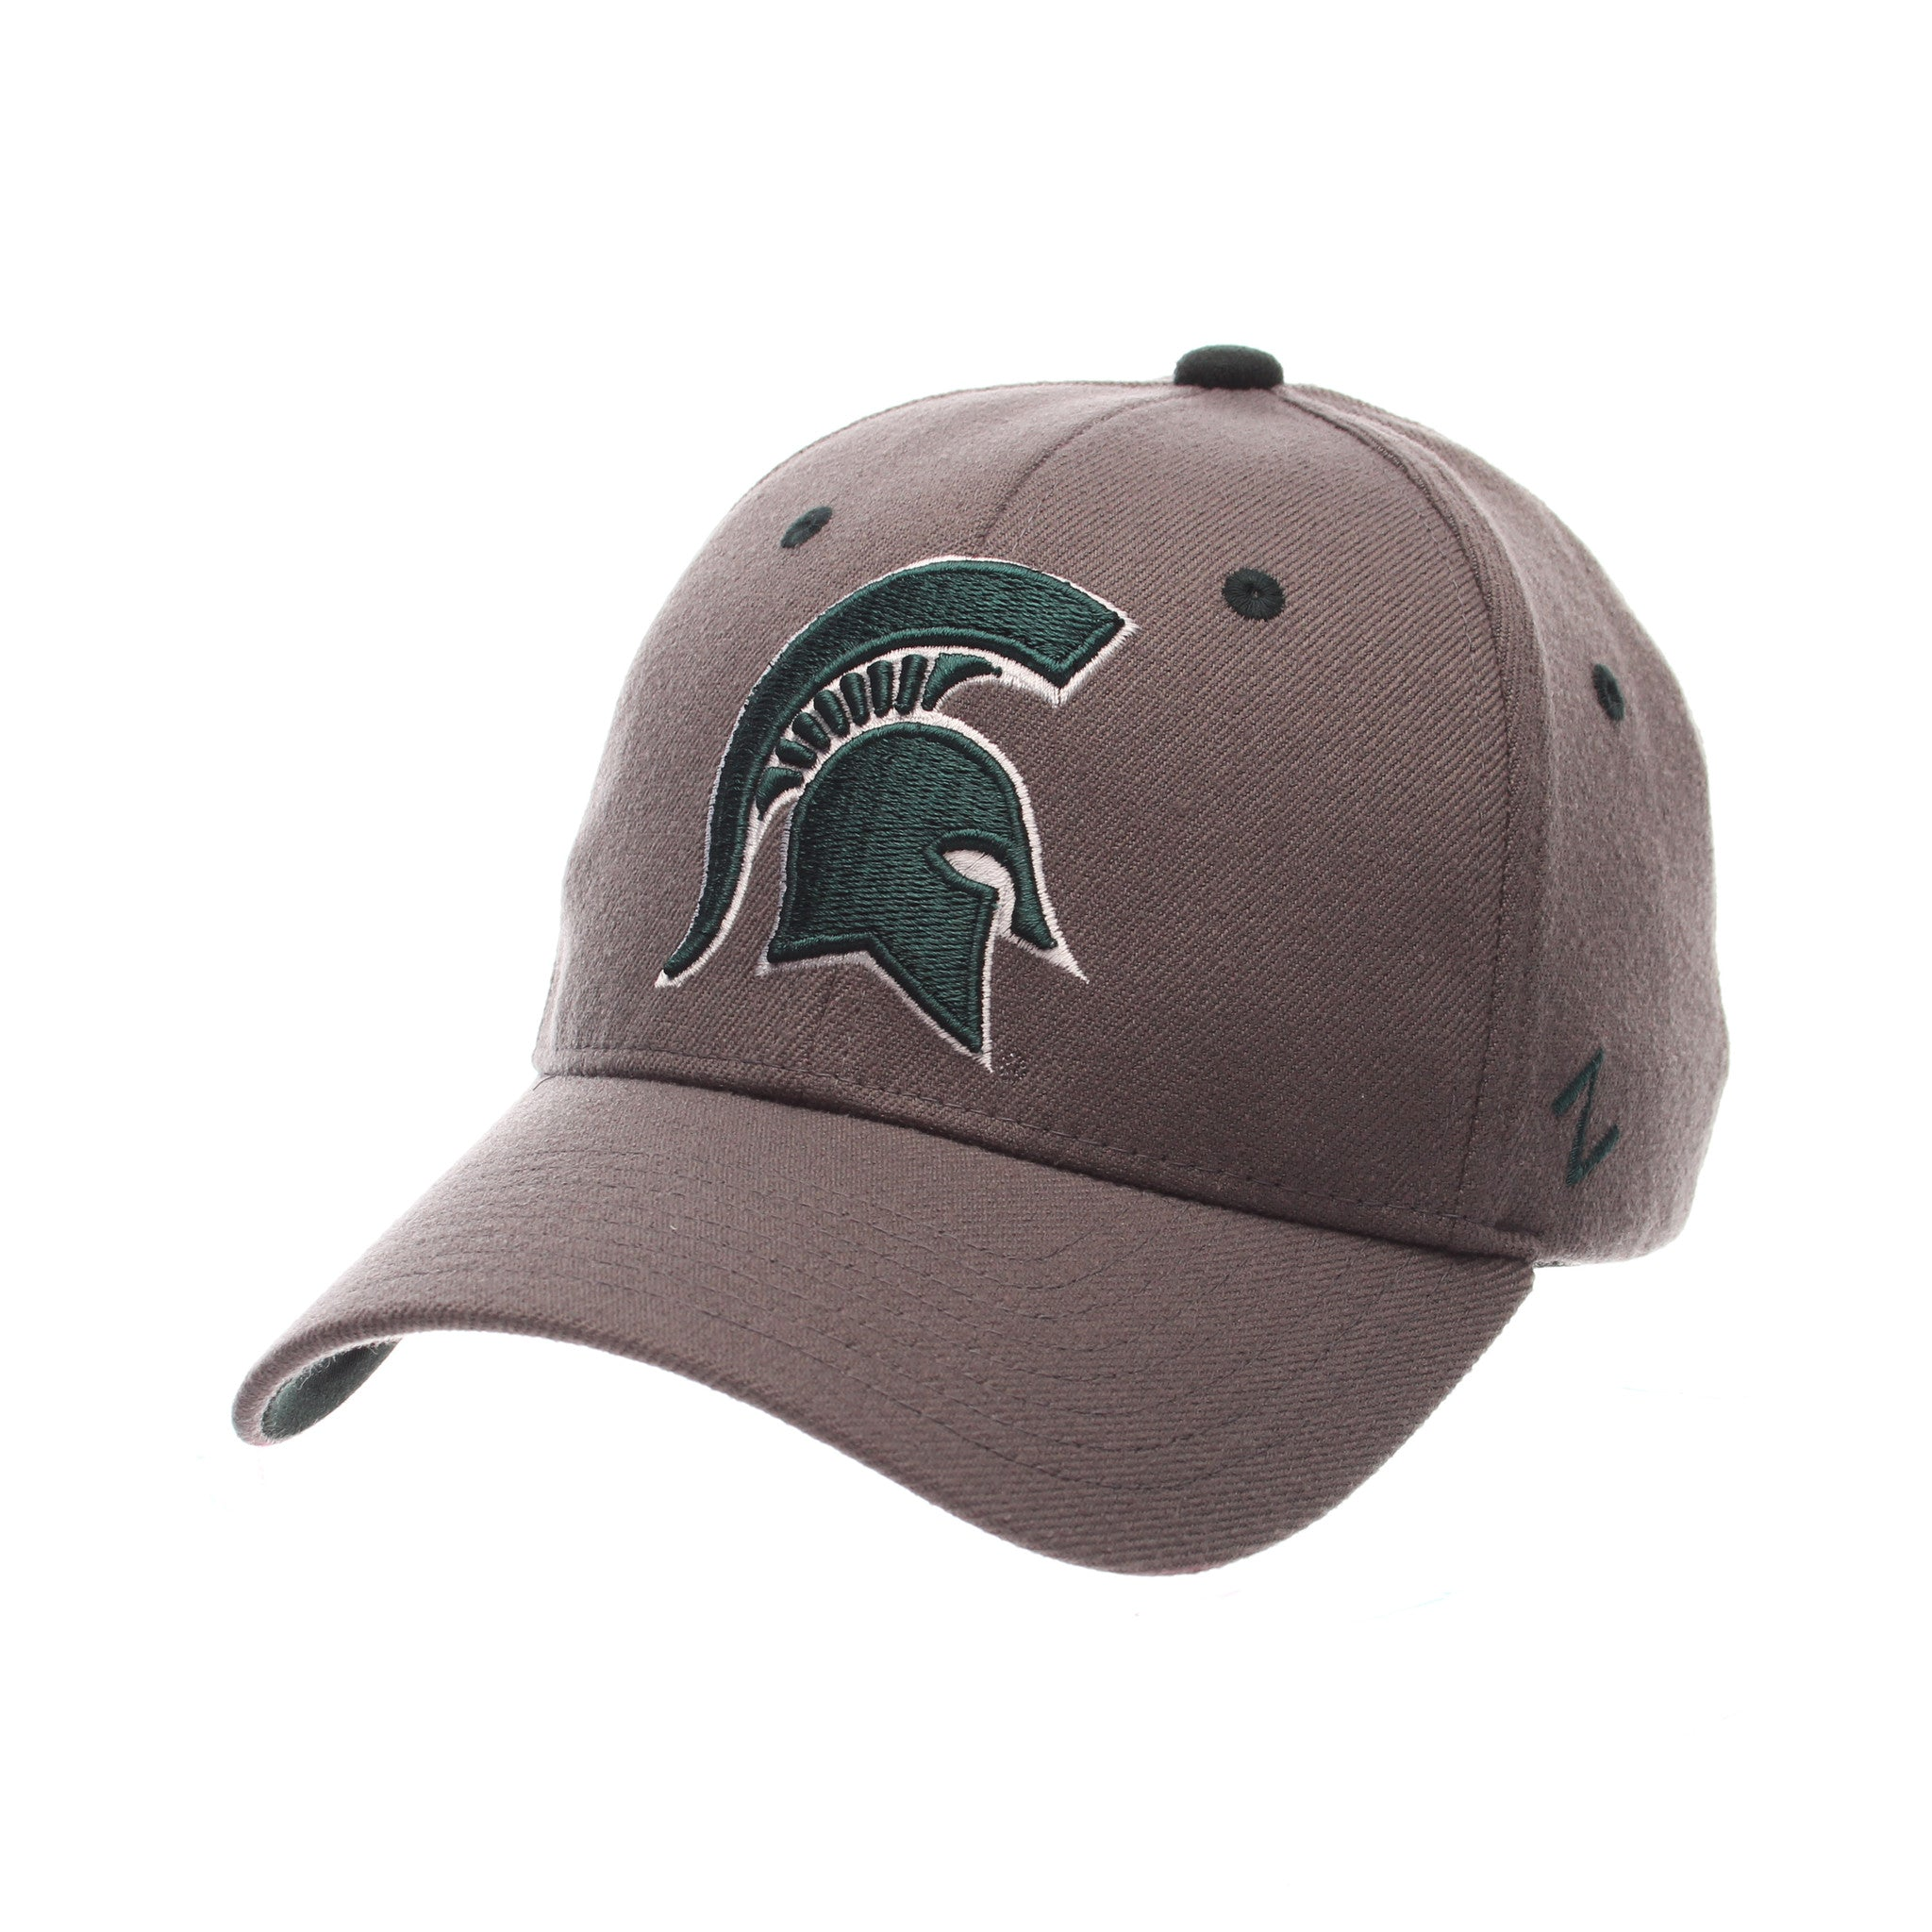 Michigan State University ZHS Standard (Low) (SPARTAN) Gray Medium Zwool Stretch Fit hats by Zephyr